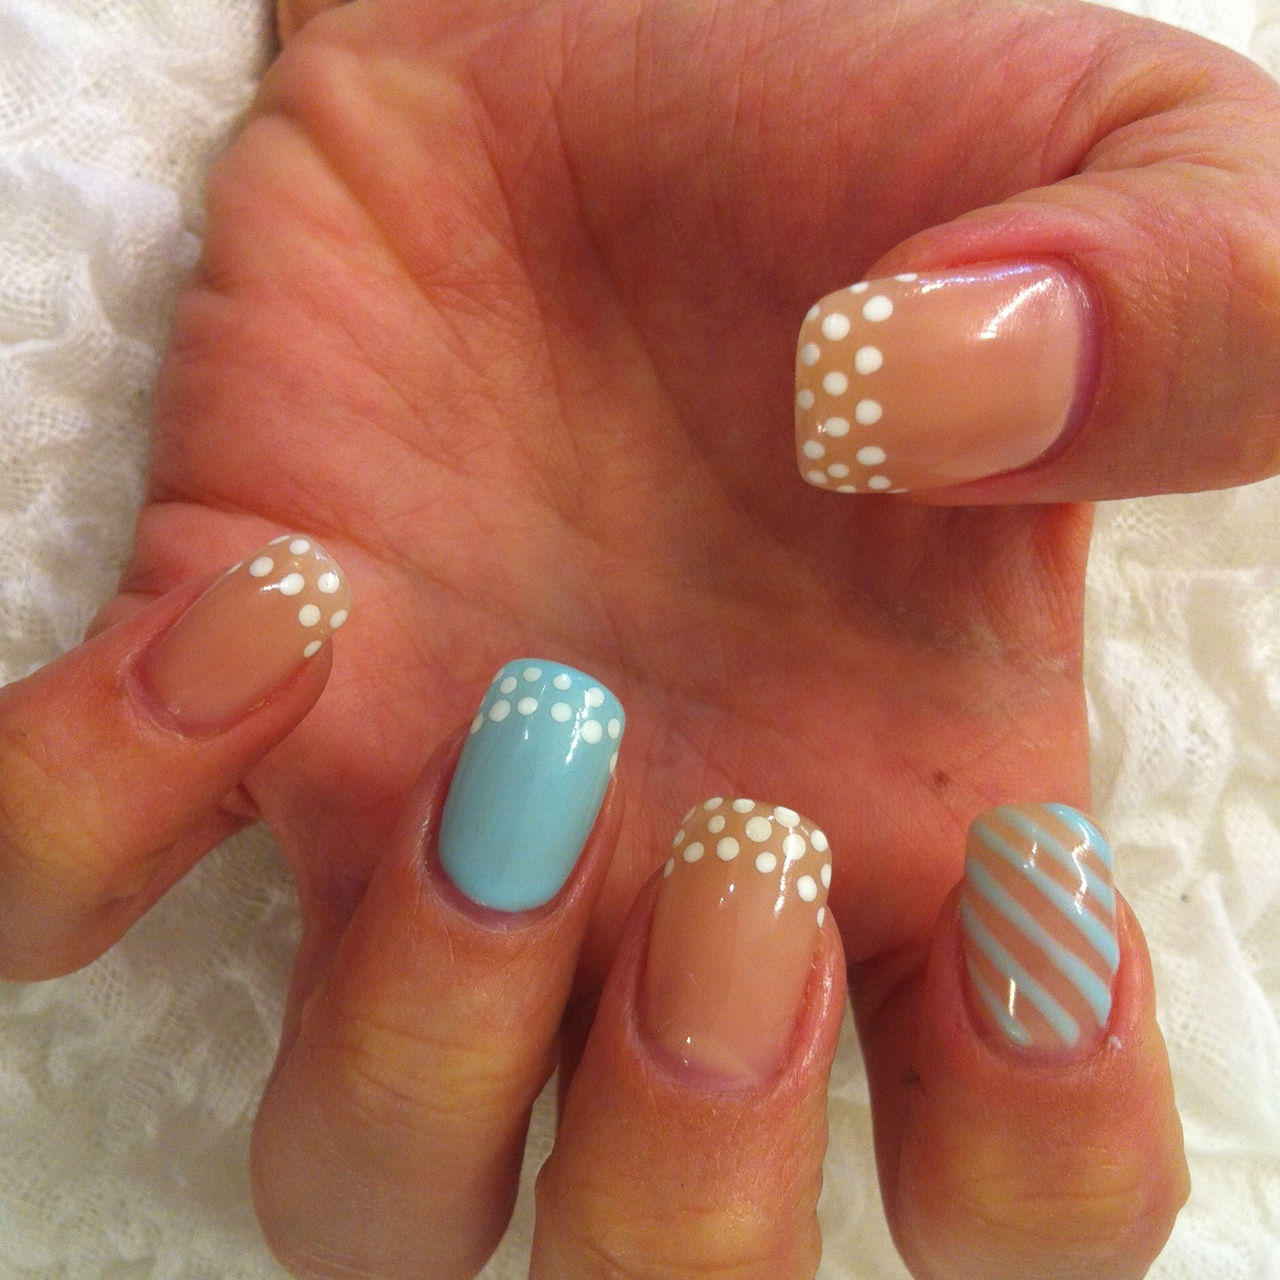 16 summer french nail designs images summer french manicure nail summer french manicure nail designs prinsesfo Image collections